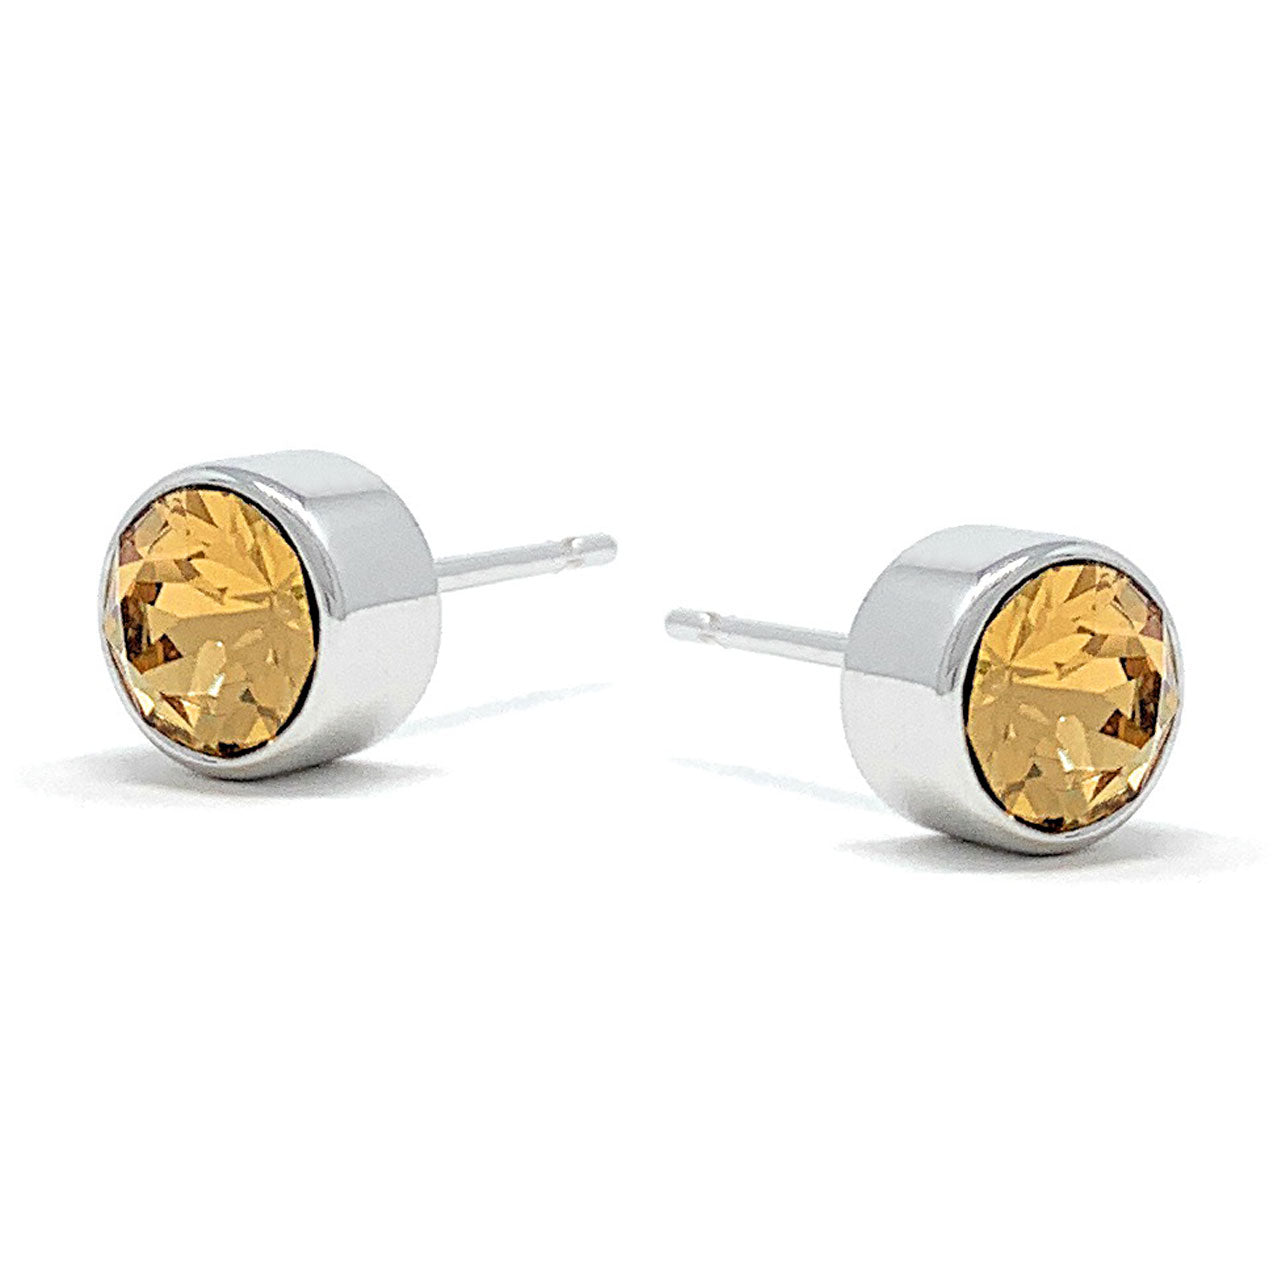 Harley Small Stud Earrings with Yellow Brown Light Topaz Round Crystals from Swarovski Silver Toned Rhodium Plated - Ed Heart